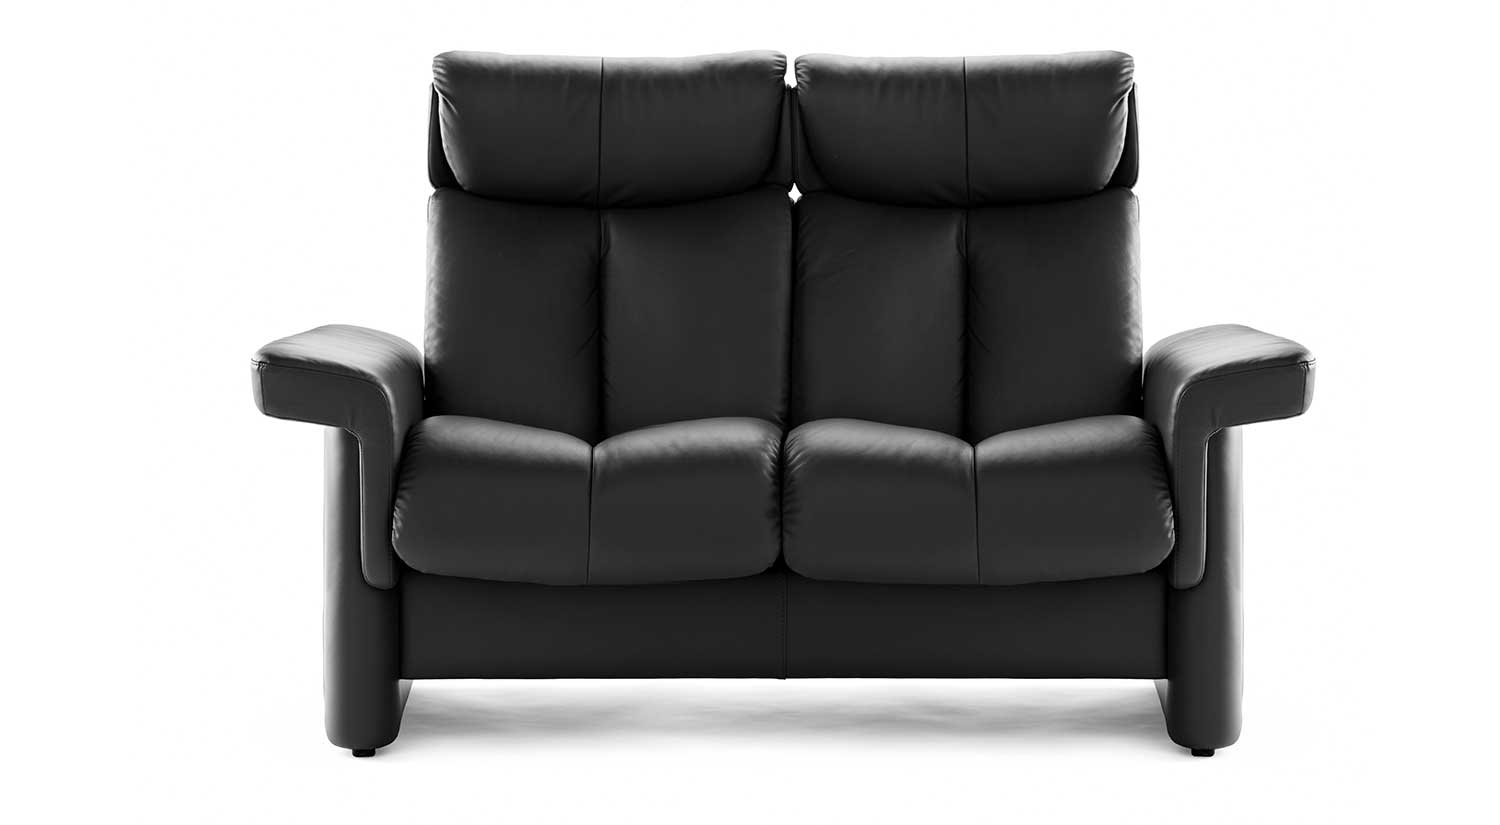 Circle Furniture Legend Stressless Highback Loveseat Home Theater Ma